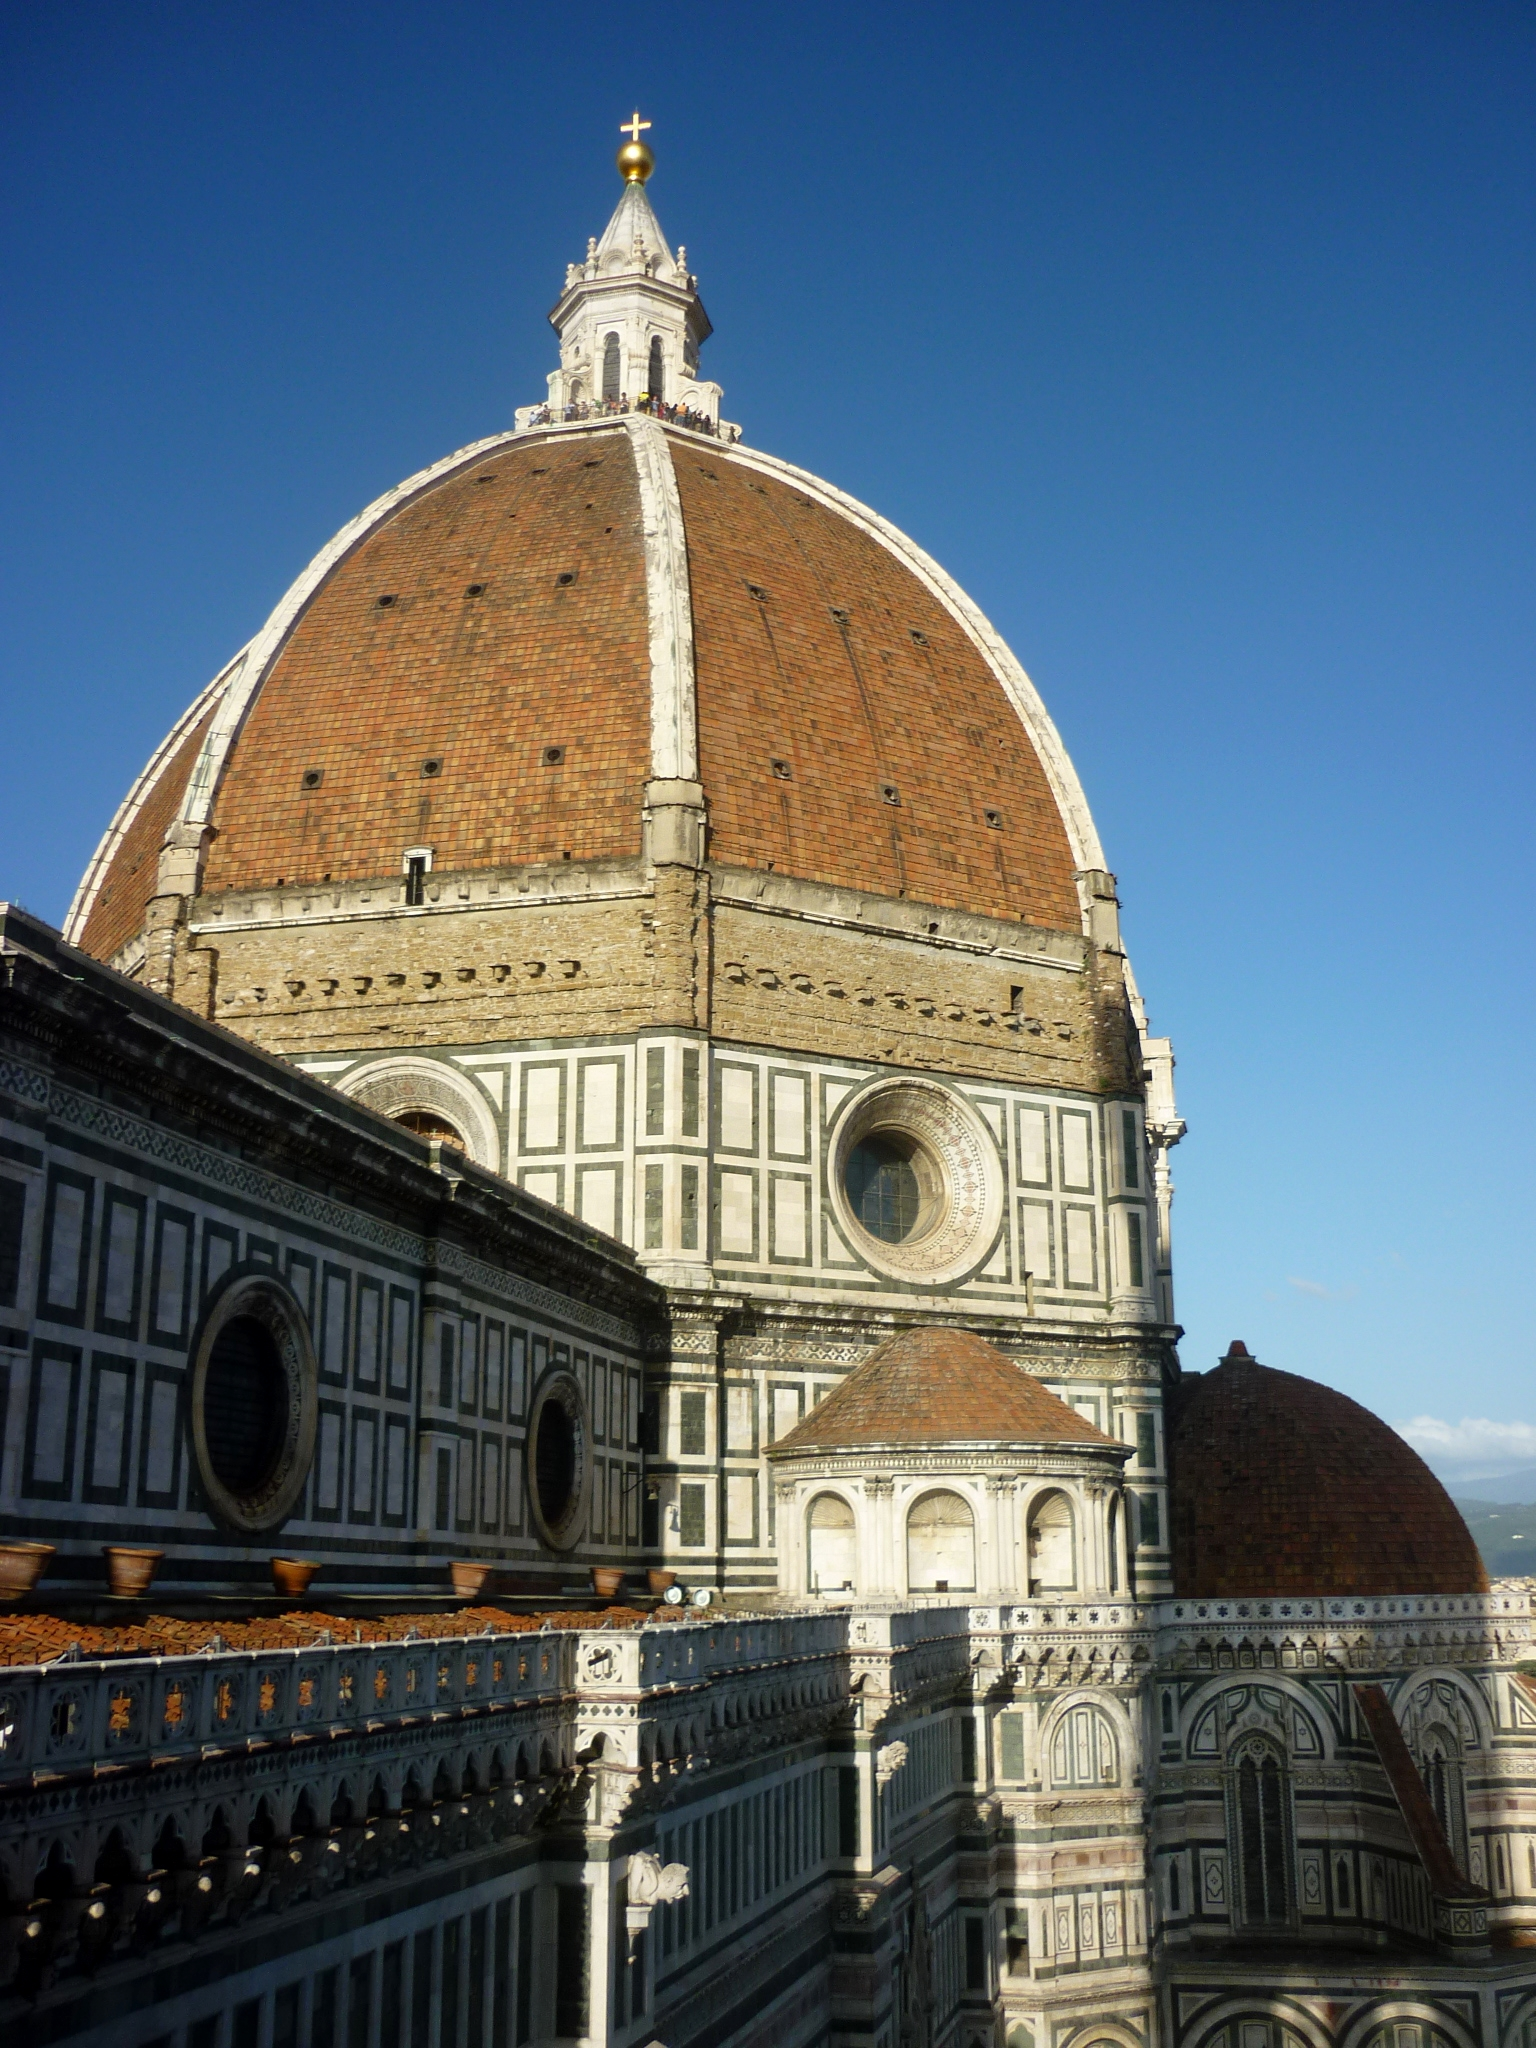 Which Of Brunelleschi S Buildings Most Closely Approximate The Centralized Plan